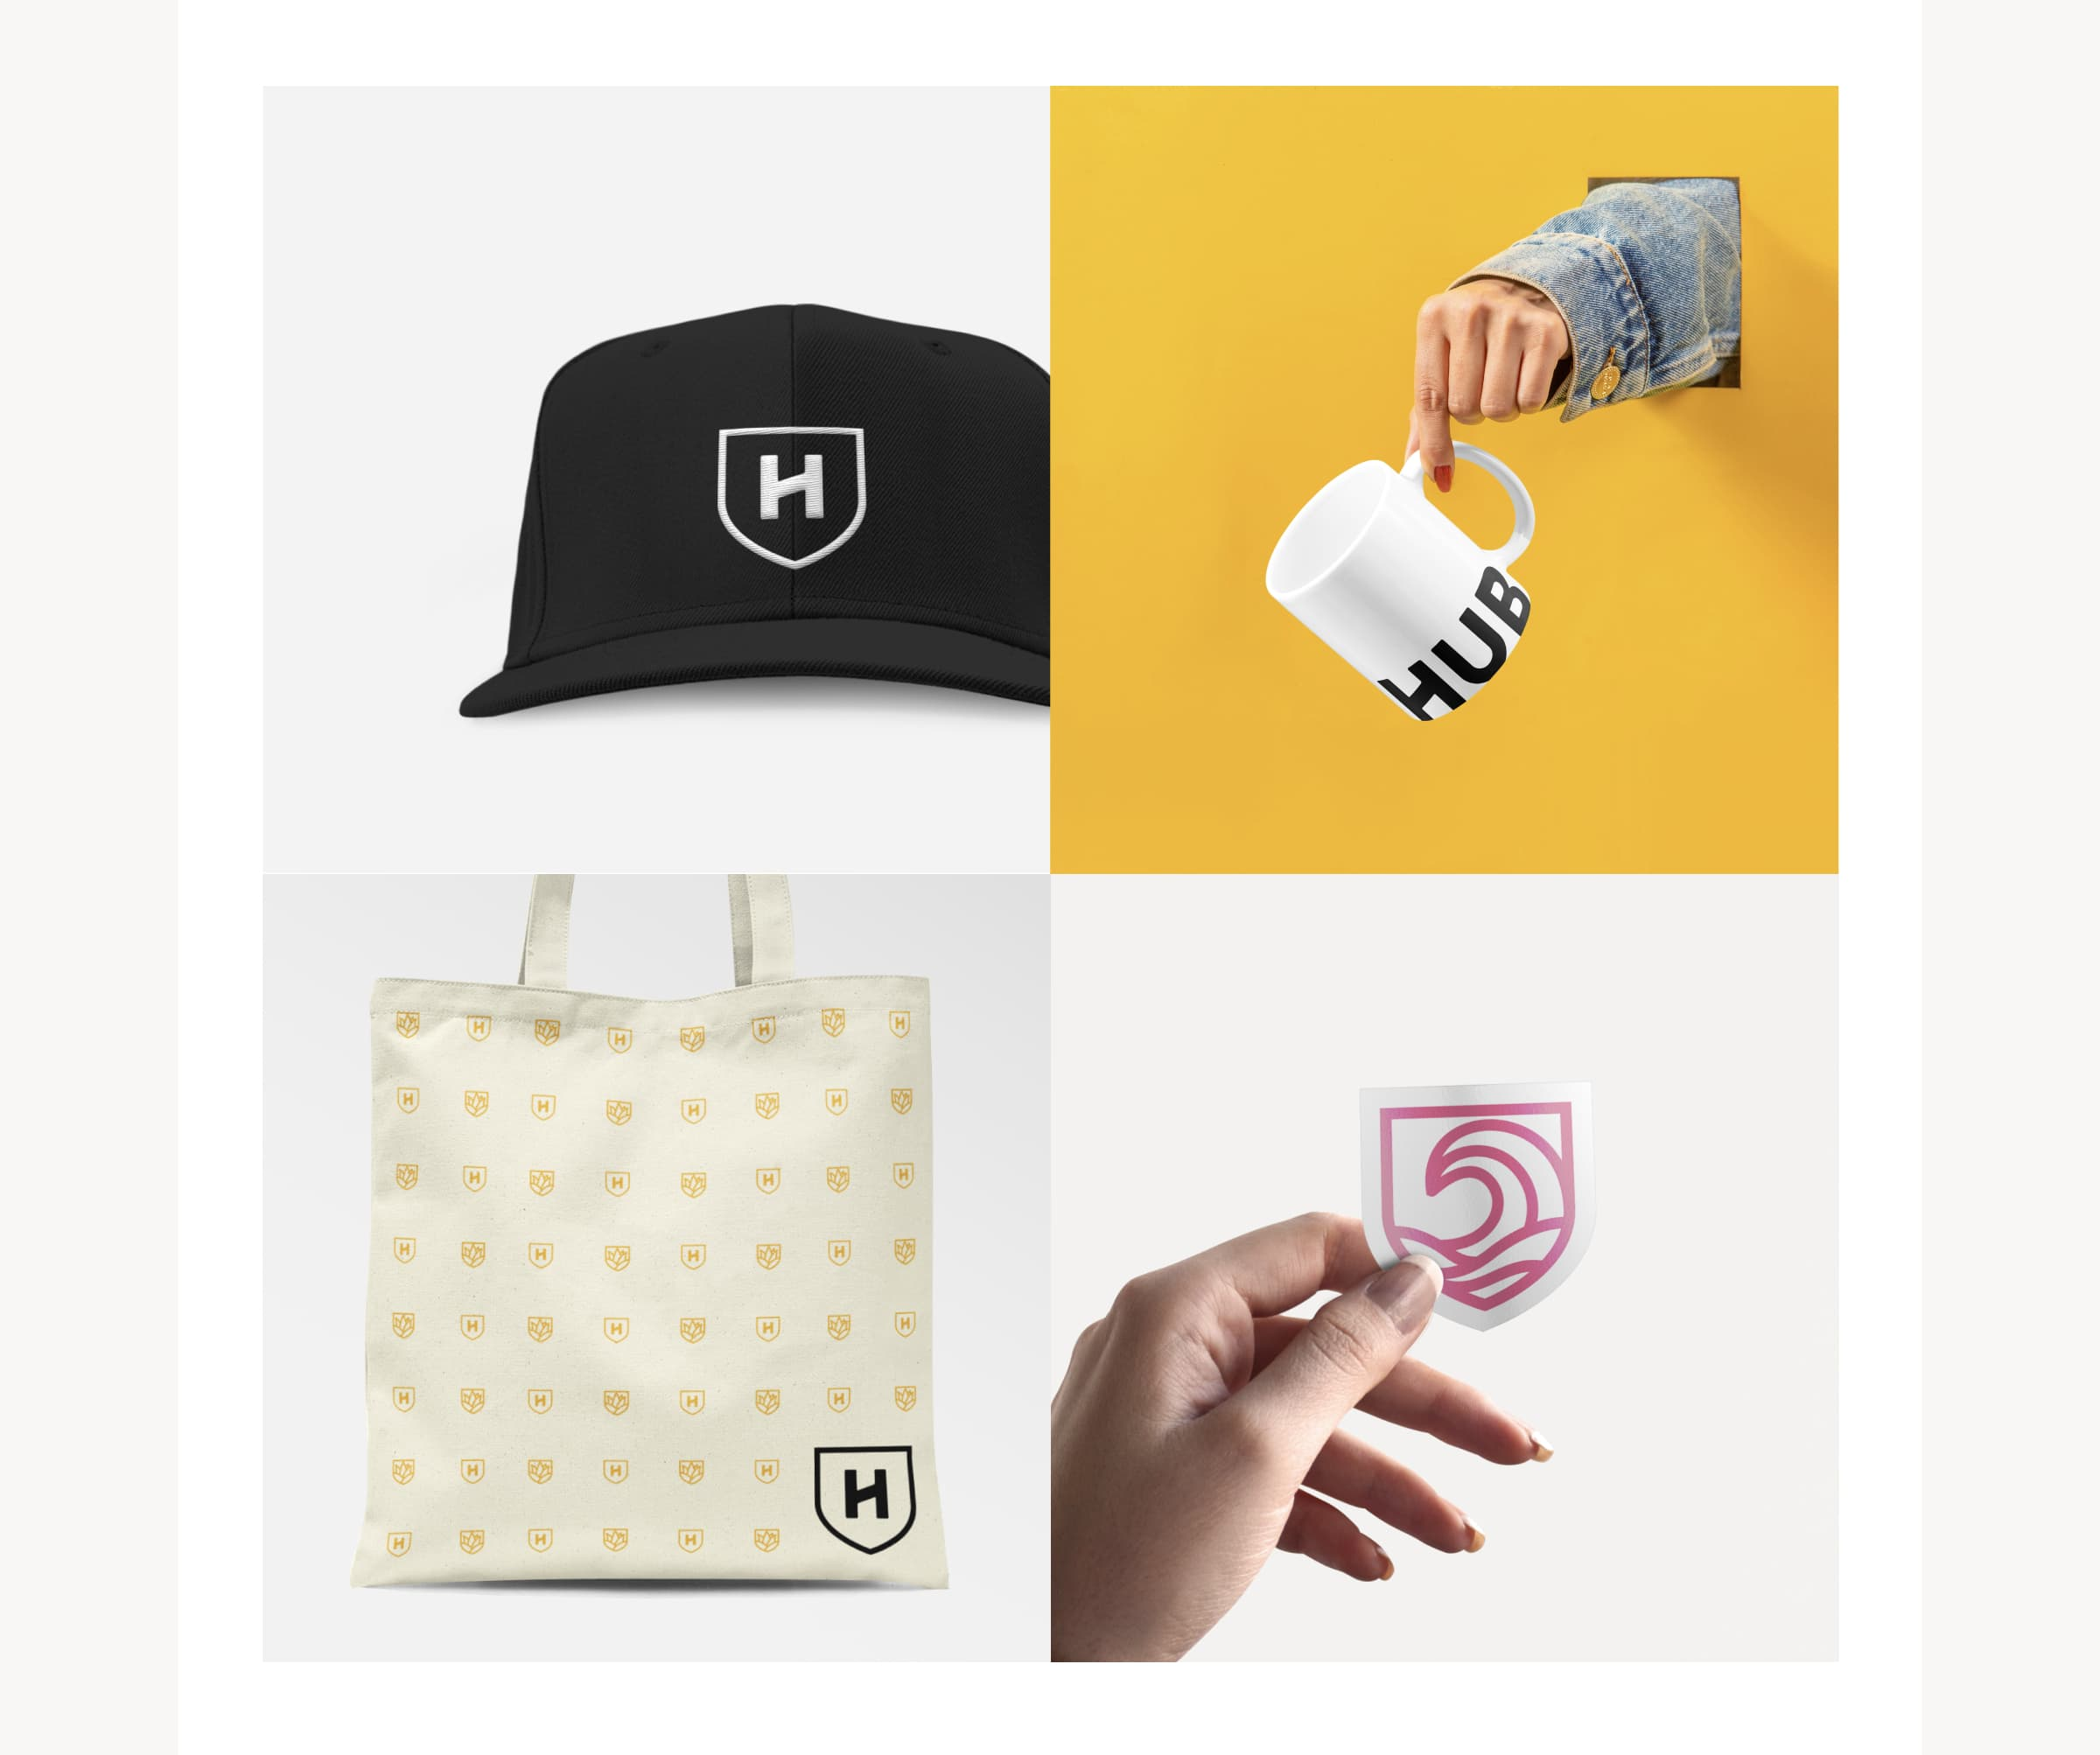 Four images of new Hub swag and merchandise, including a baseball hat, a coffee mug, a tote bag, and a sticker.